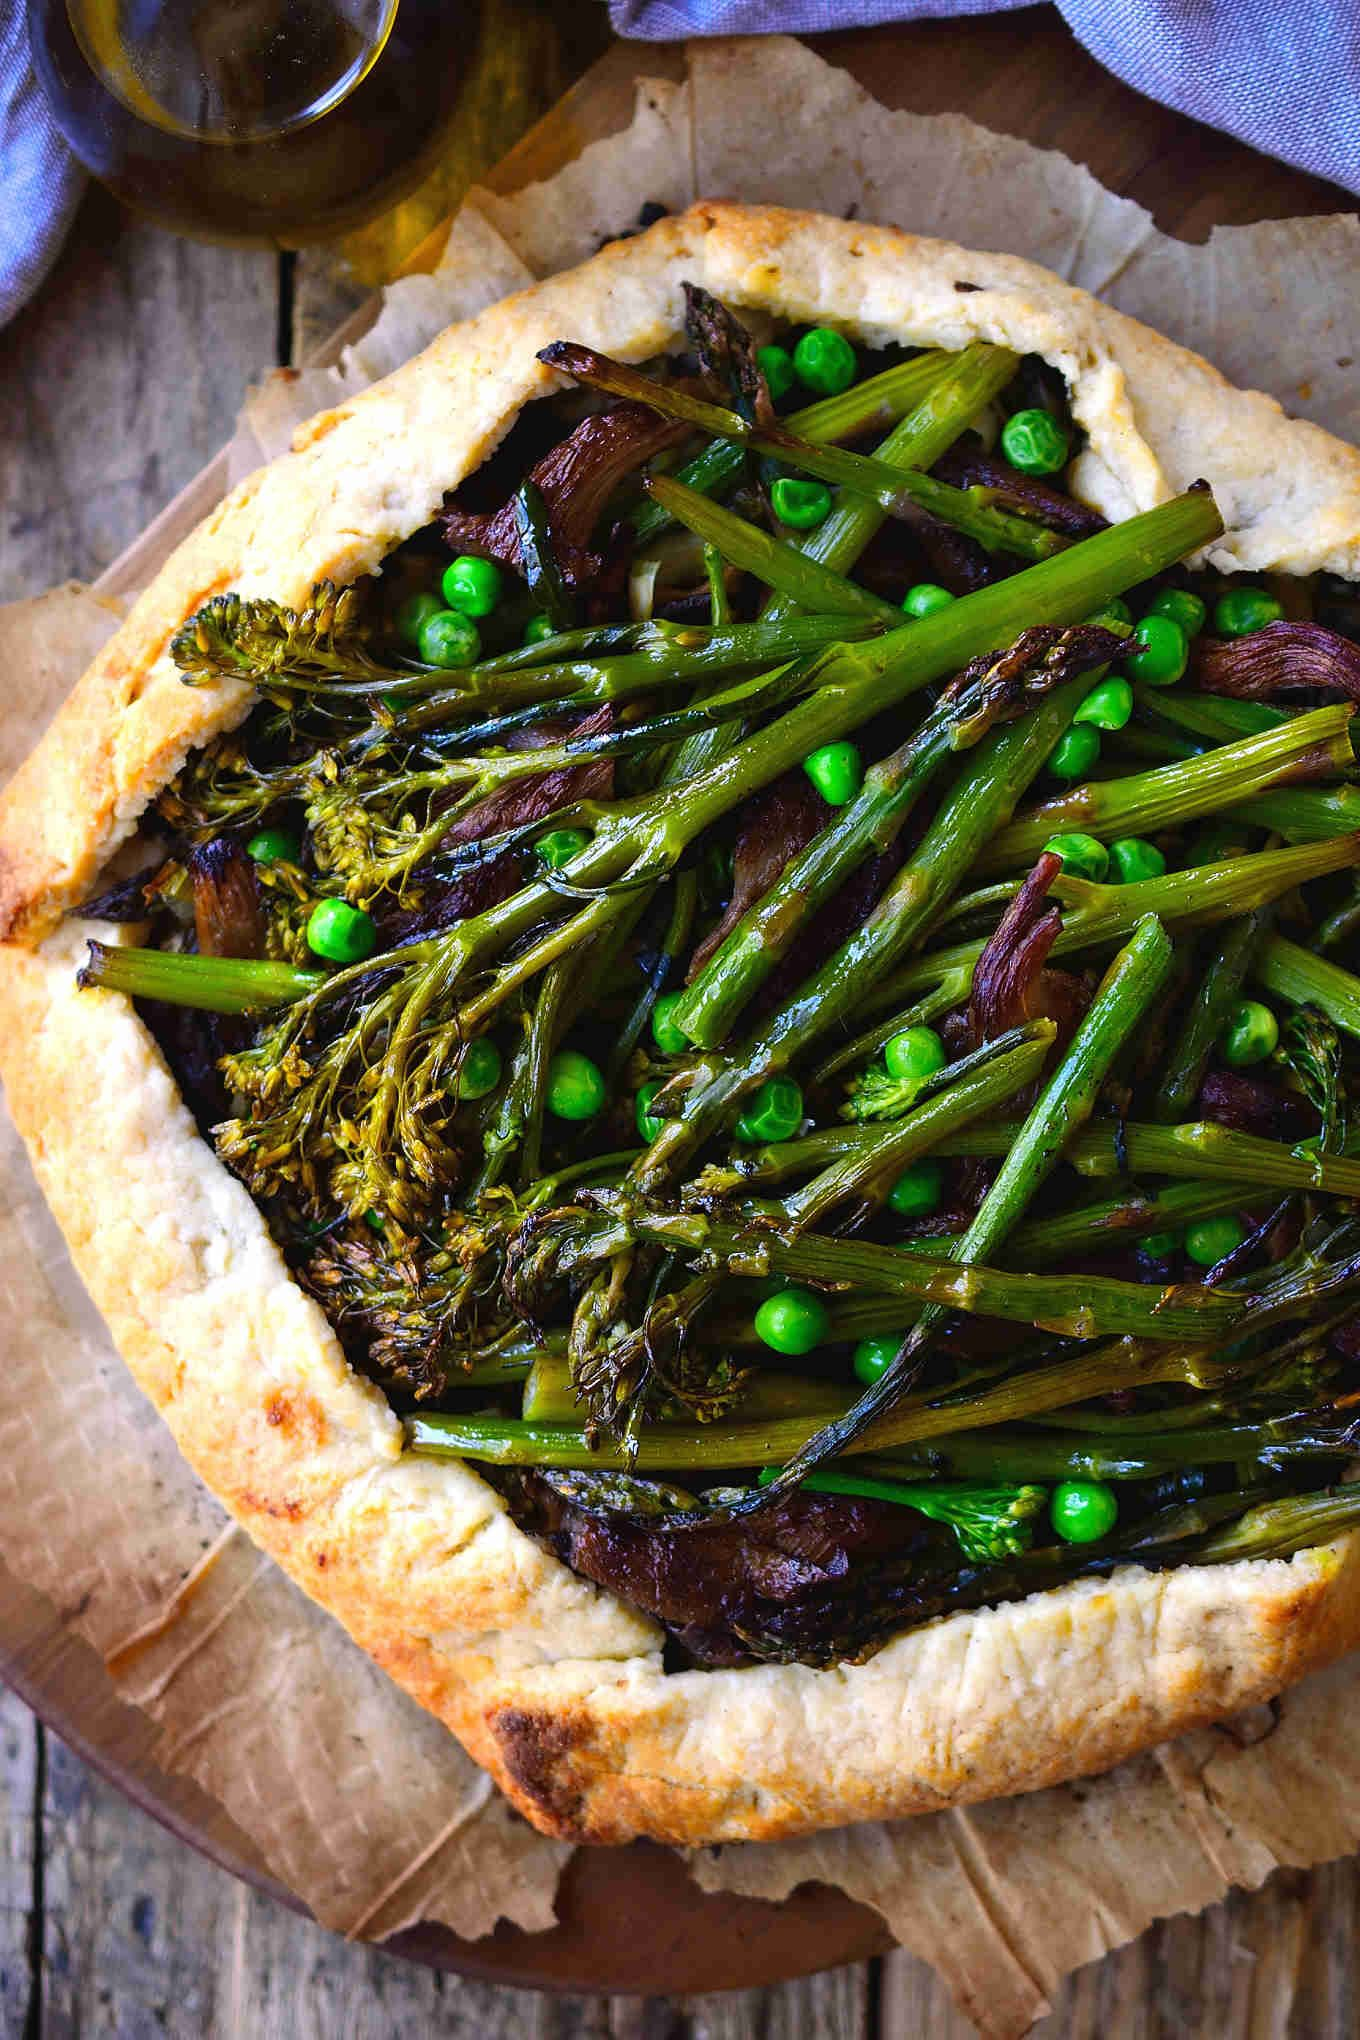 This vegan galette encompasses all the flavours of spring with fresh asparagus, broccolini and garden peas on a bed of kale and vegan ricotta cheese. Sautéed oyster mushrooms add a smoky, meaty element and the vegan pie crust is light and deliciously flaky. Serve this spring vegetable vegan galette as part of an Easter meal, mother's day brunch, take it to a picnic or for just a regular Tuesday night dinner to welcome spring's wonderful produce!